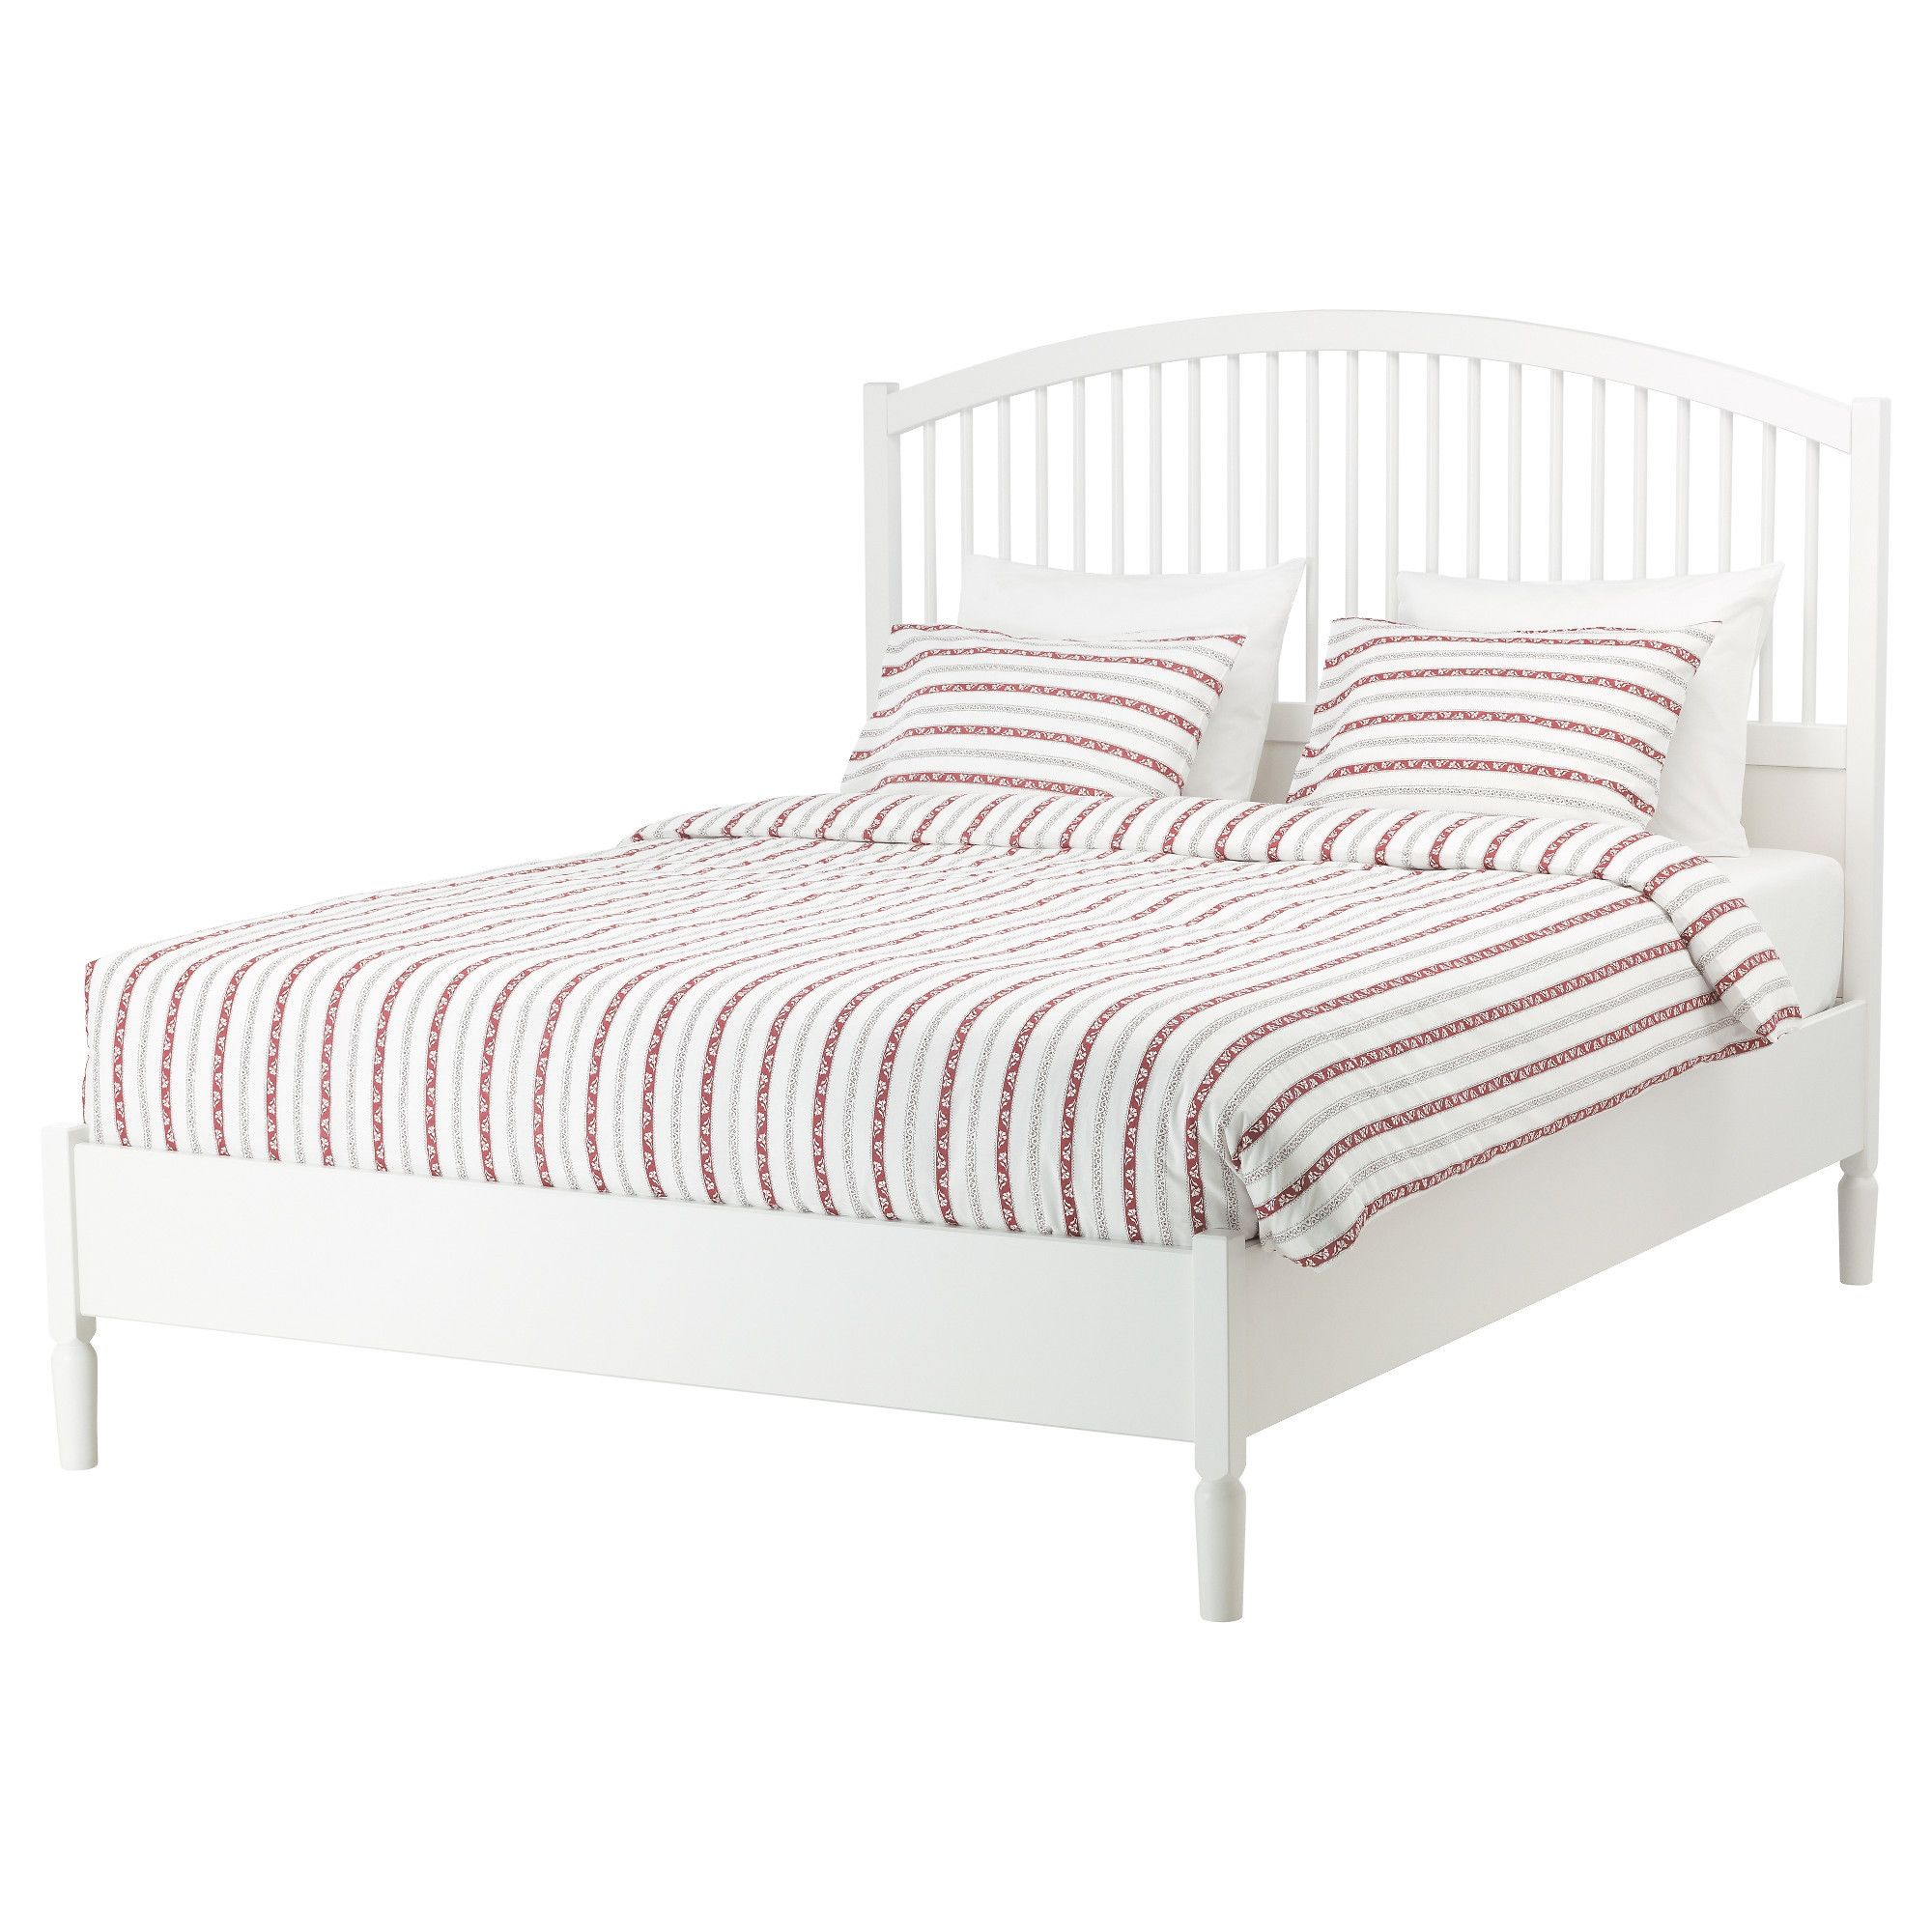 30 Beautiful Where To Buy Bed Frames In Store Which Popular This Year Ikea Bed Frames Ikea Bed Murphy Bed Ikea